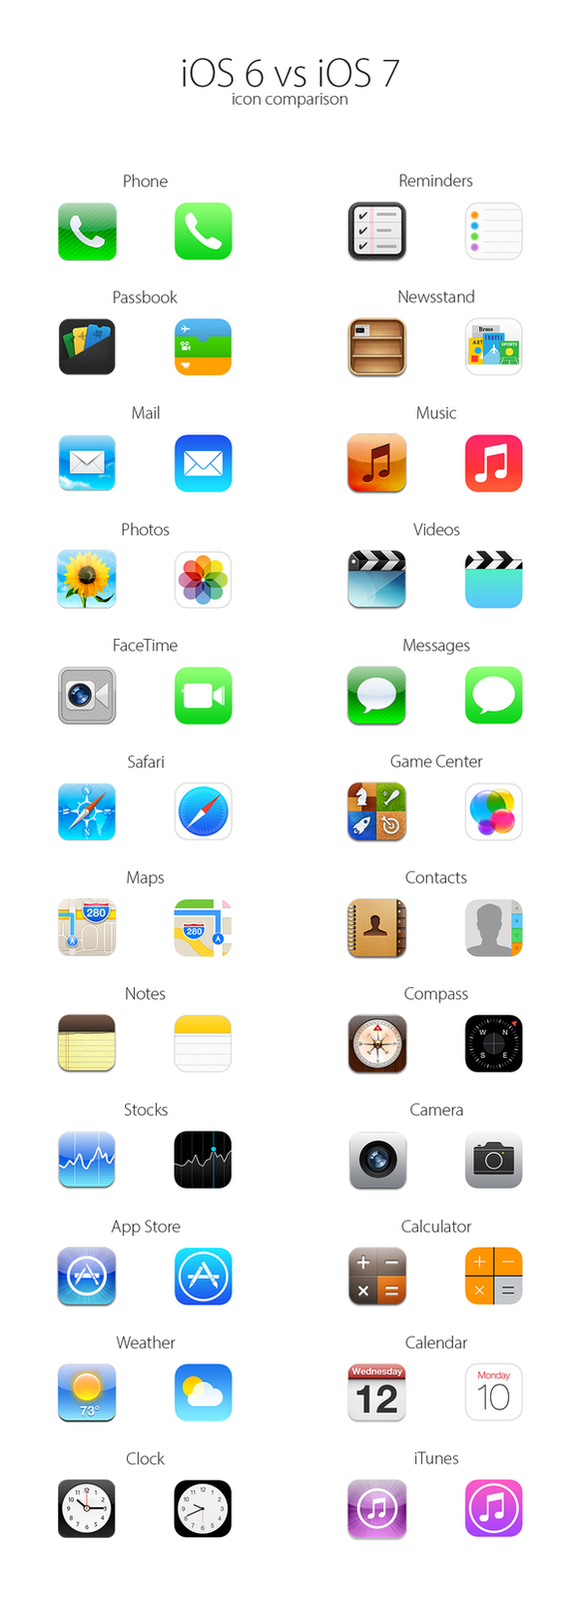 ios-7-vs-ios-6-les-icones-qui-changent.png